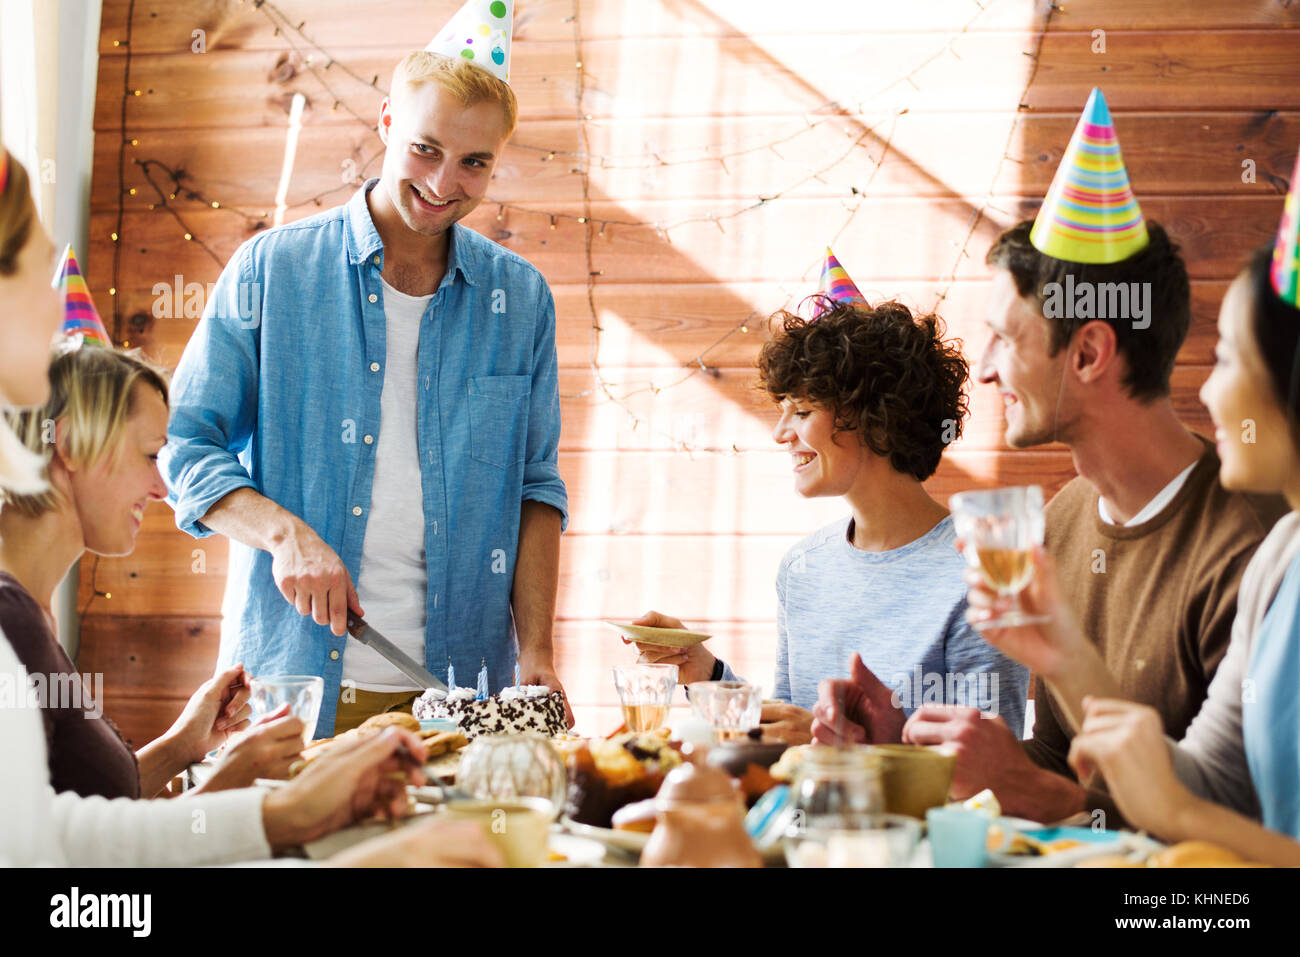 Young man cutting birthday cakes with candles among his friends by